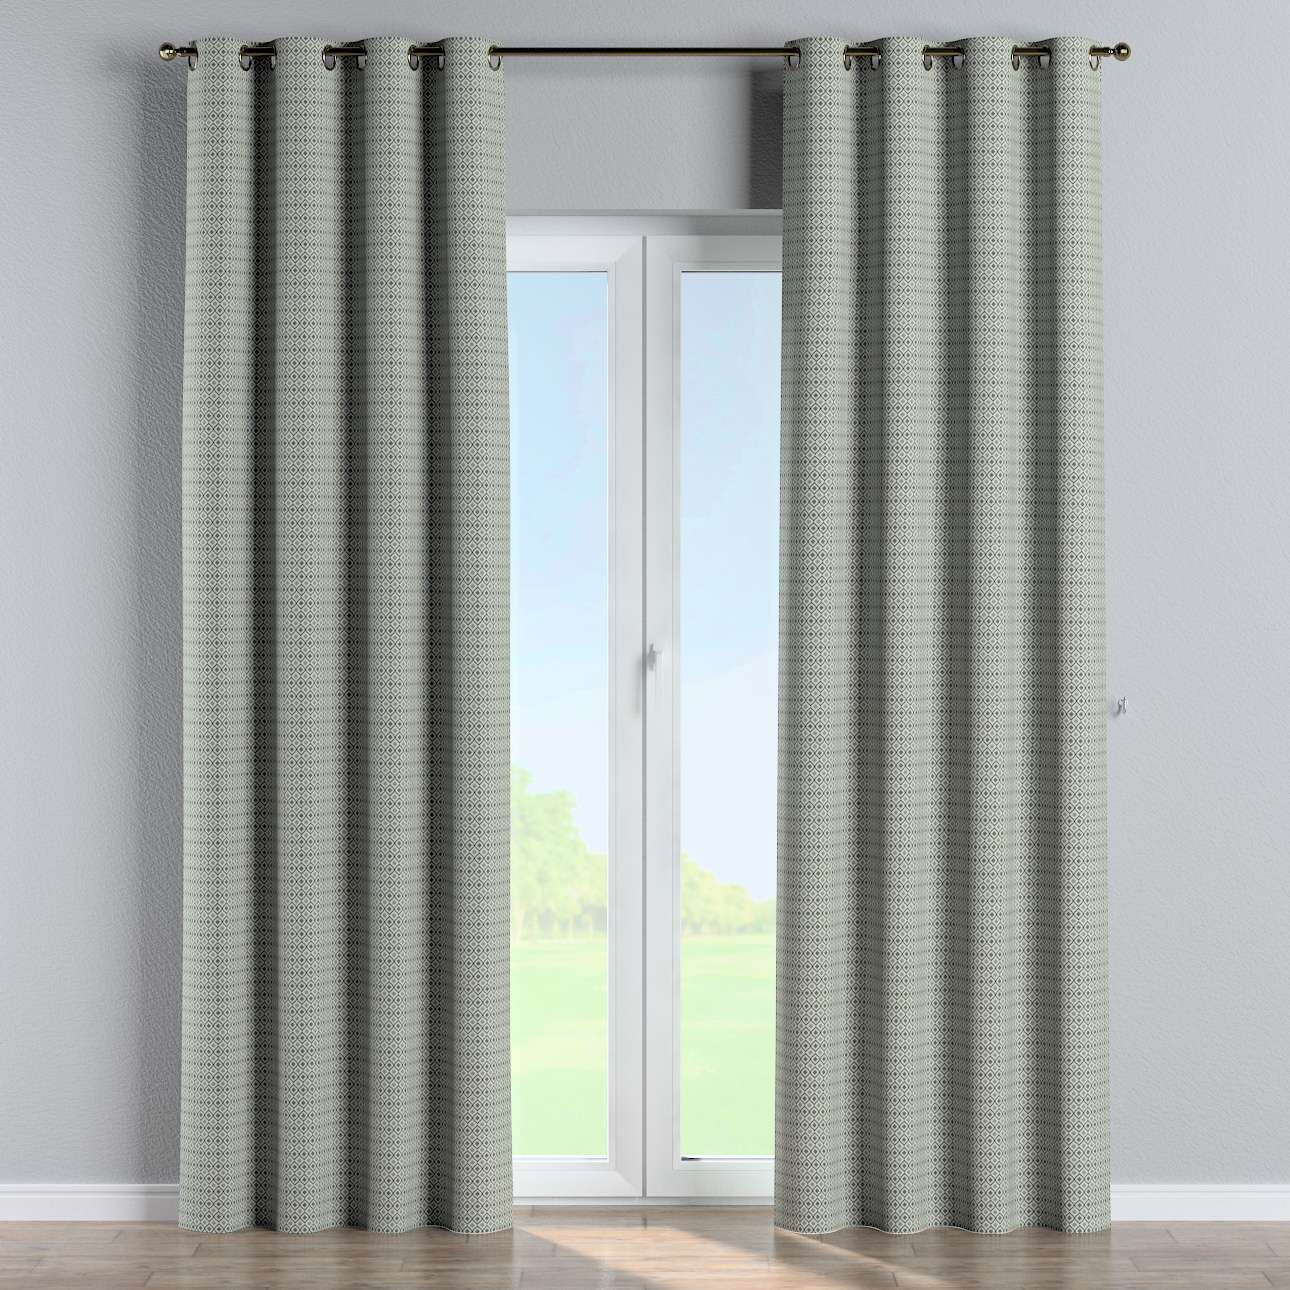 Eyelet curtains in collection Black & White, fabric: 142-76